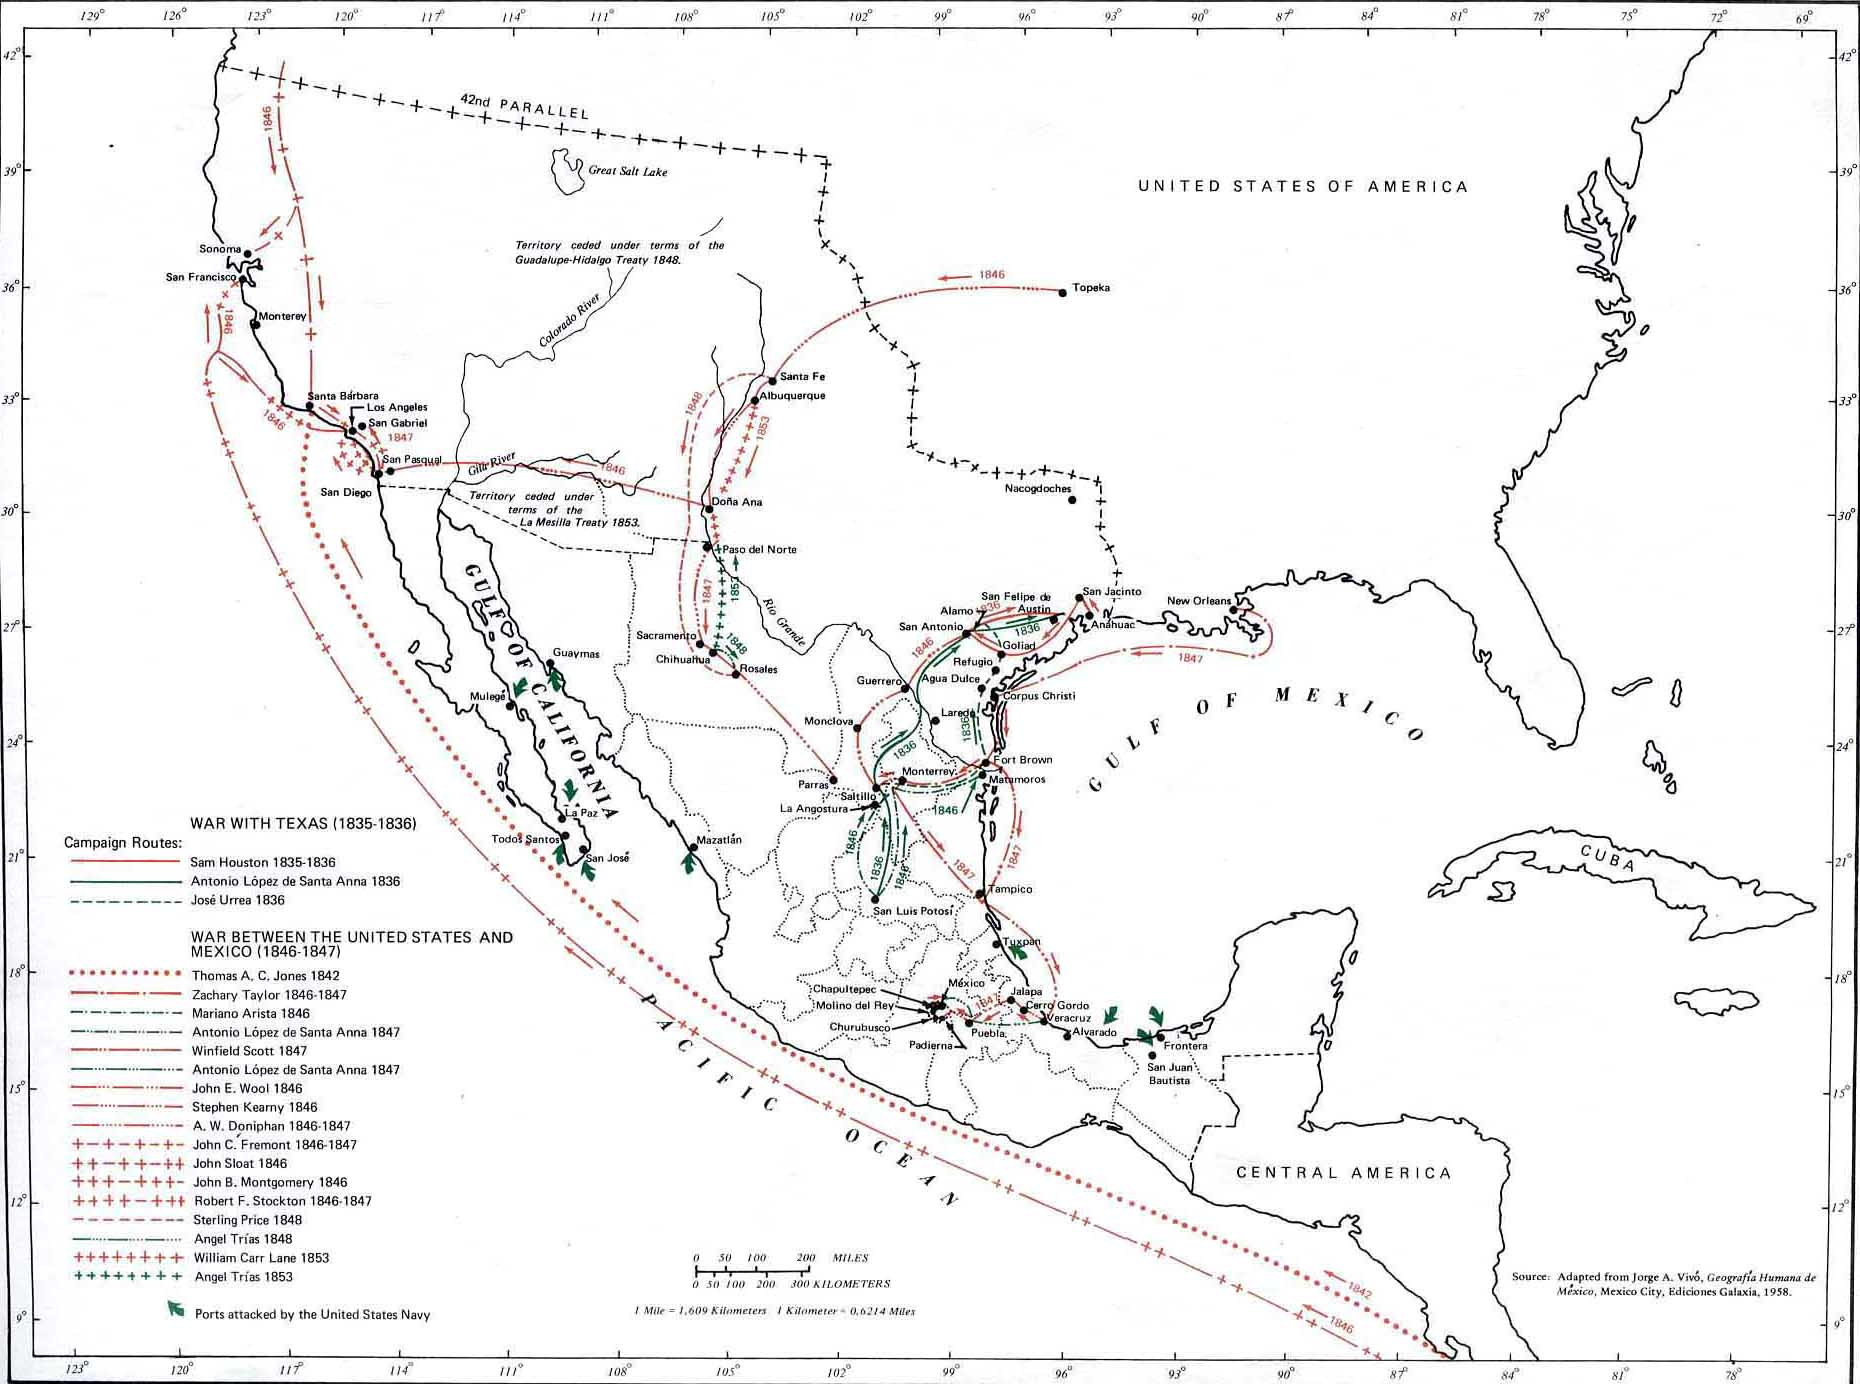 Map of MexicanAmerican Campaigns 18351853